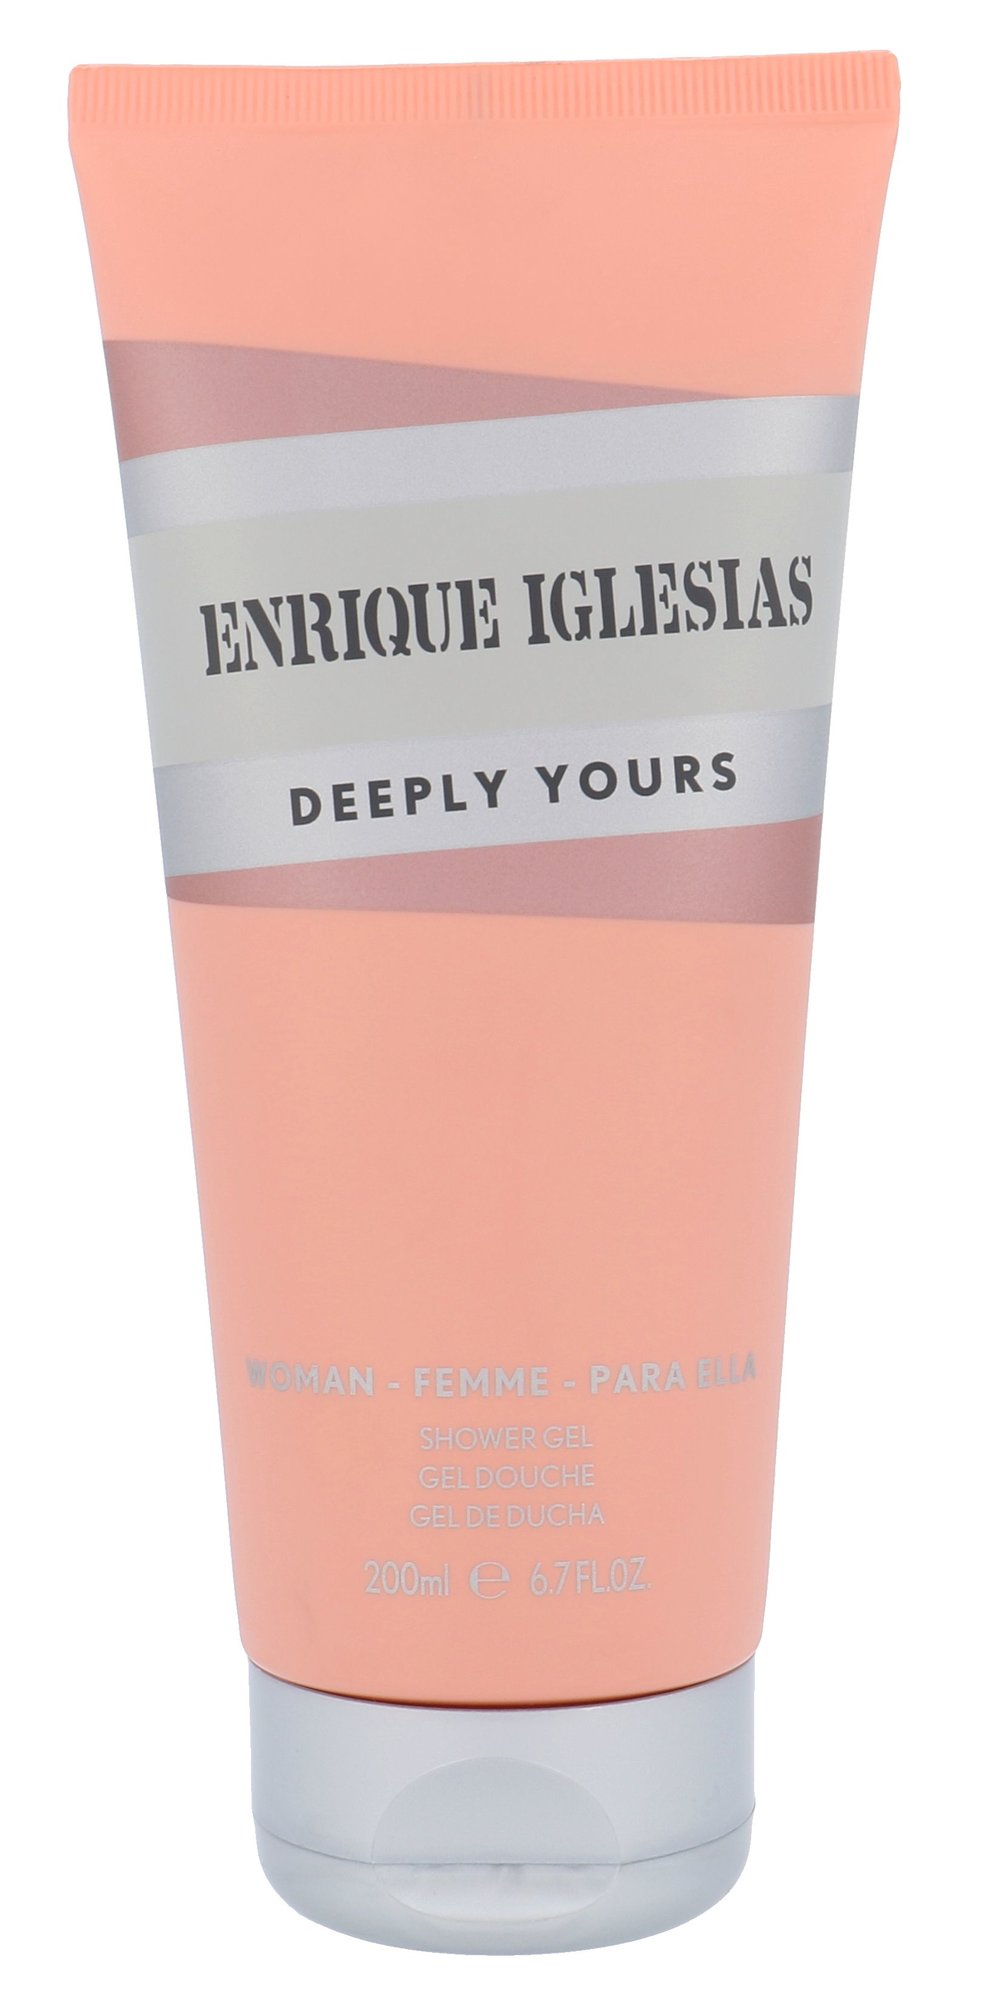 Enrique Iglesias Deeply Yours Woman Shower gel 200ml